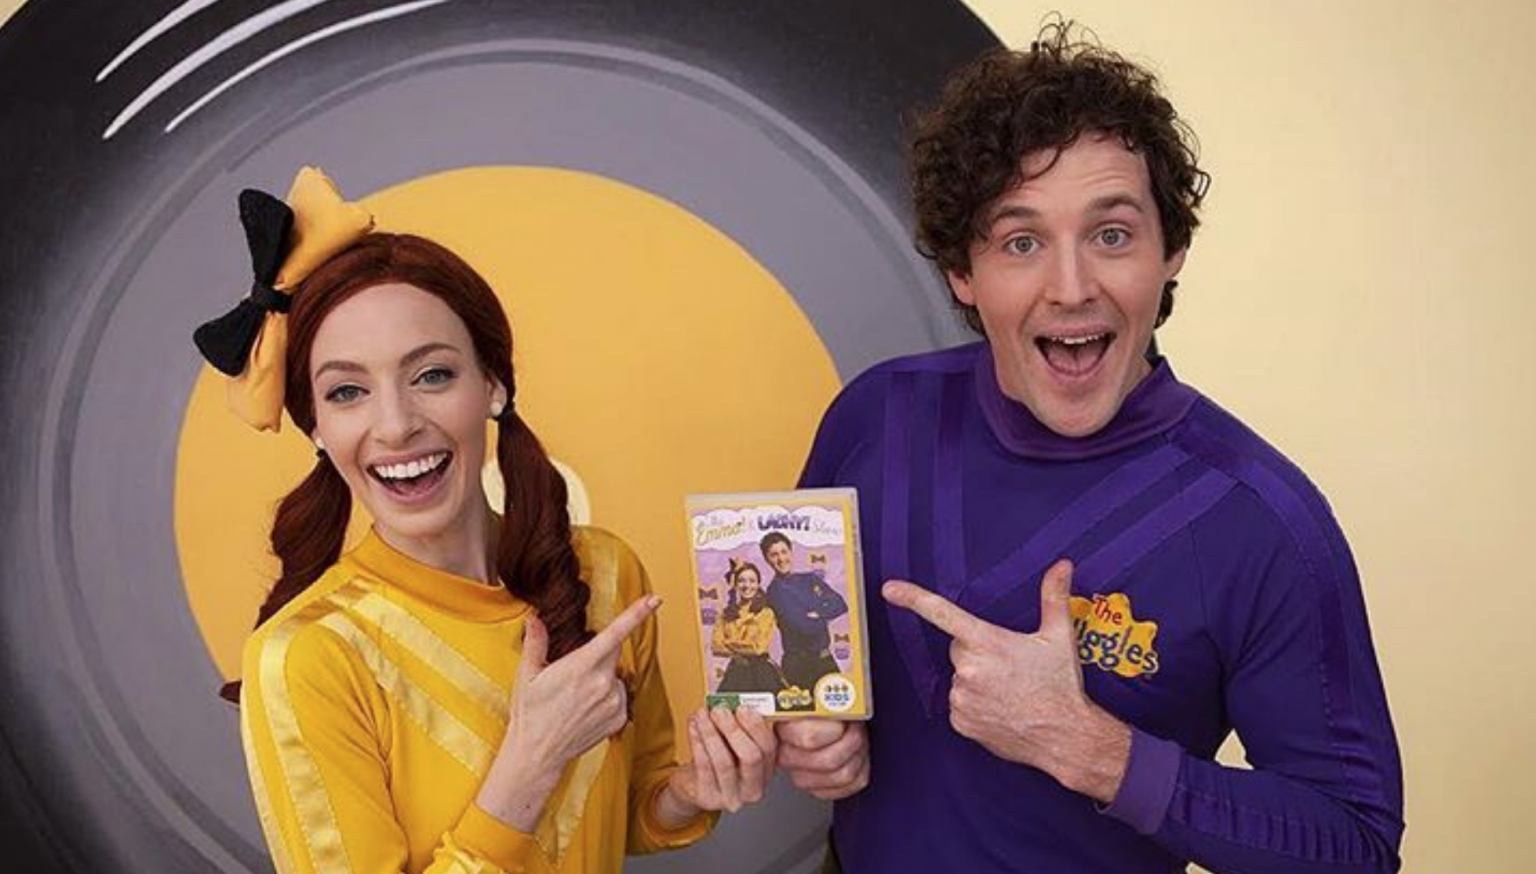 The wiggles emma and lachy dating apps